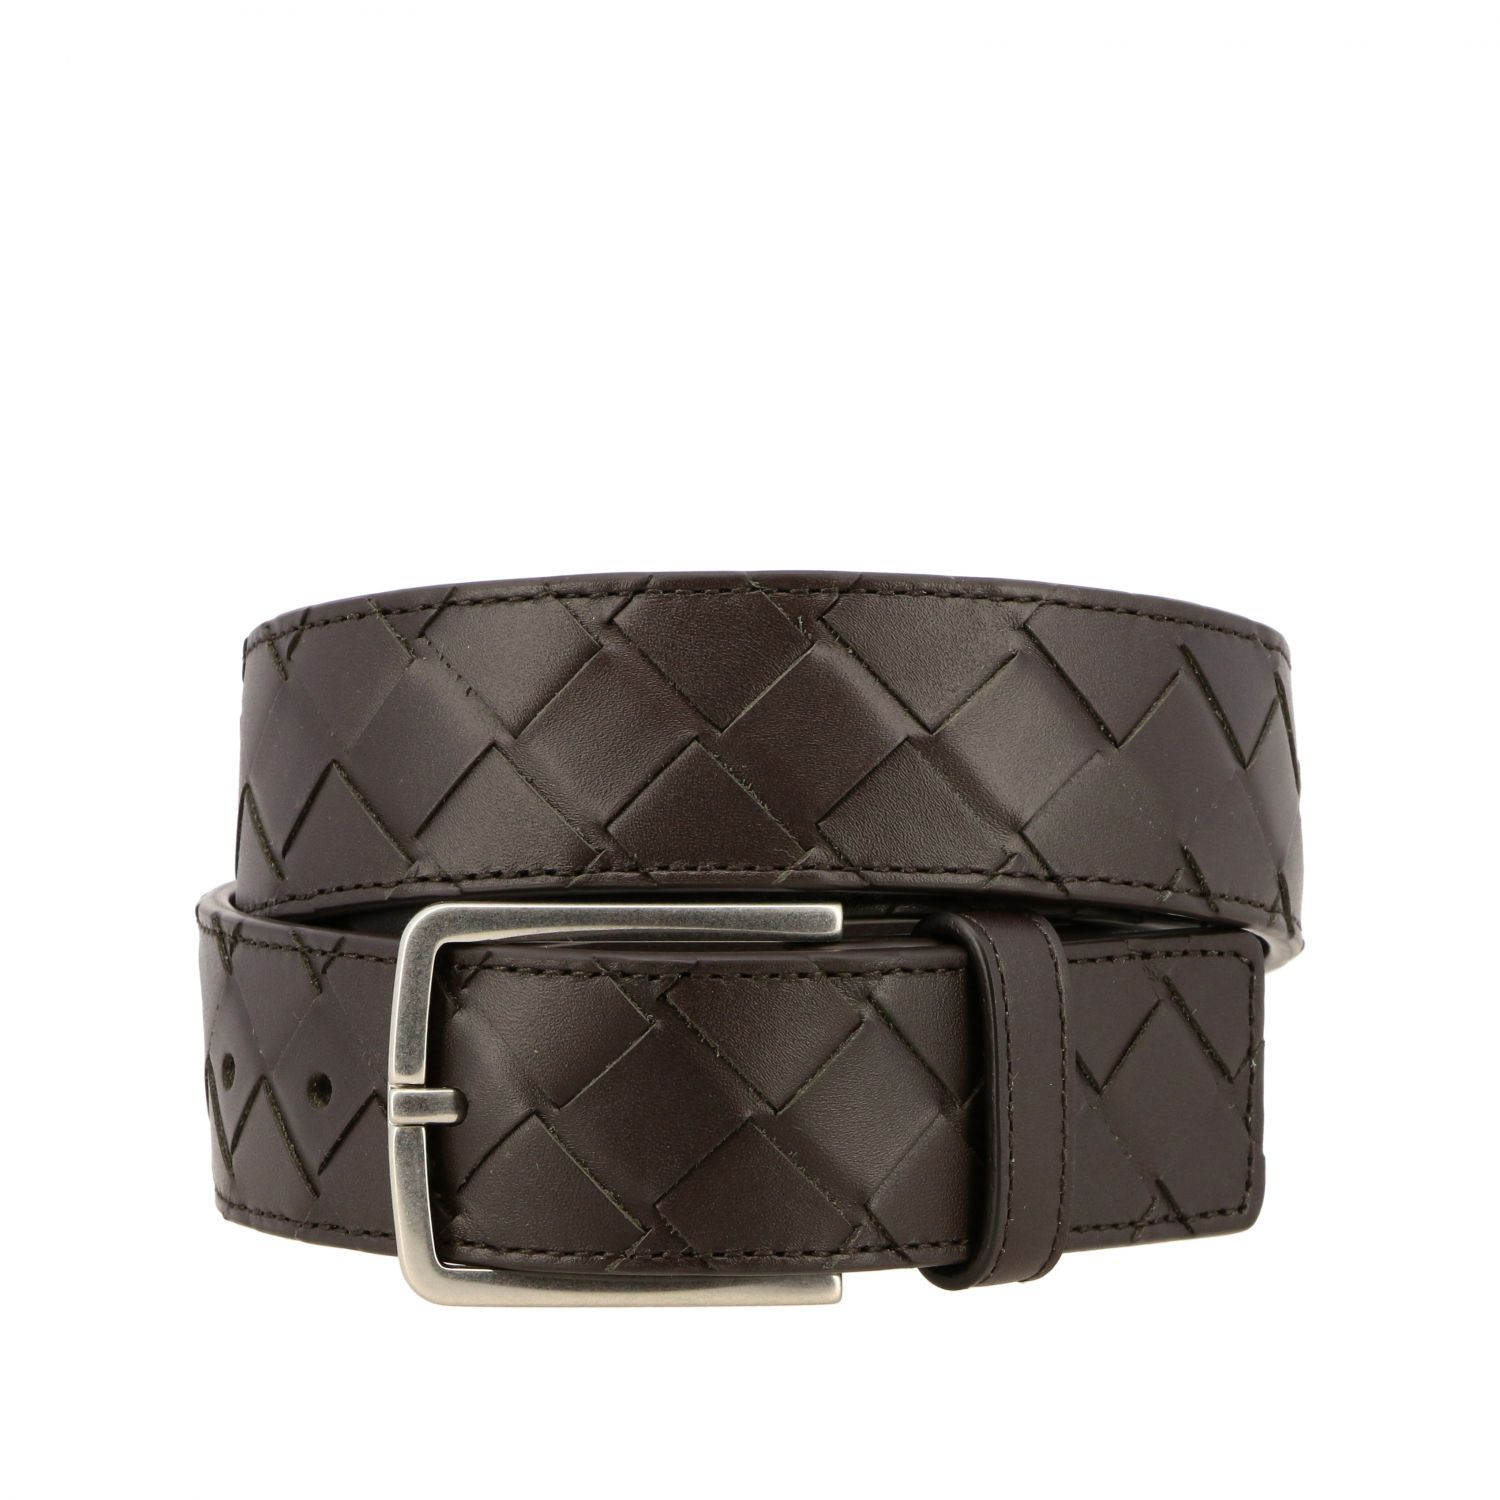 Belt Bottega Veneta: Bottega Veneta belt in woven leather brown 1